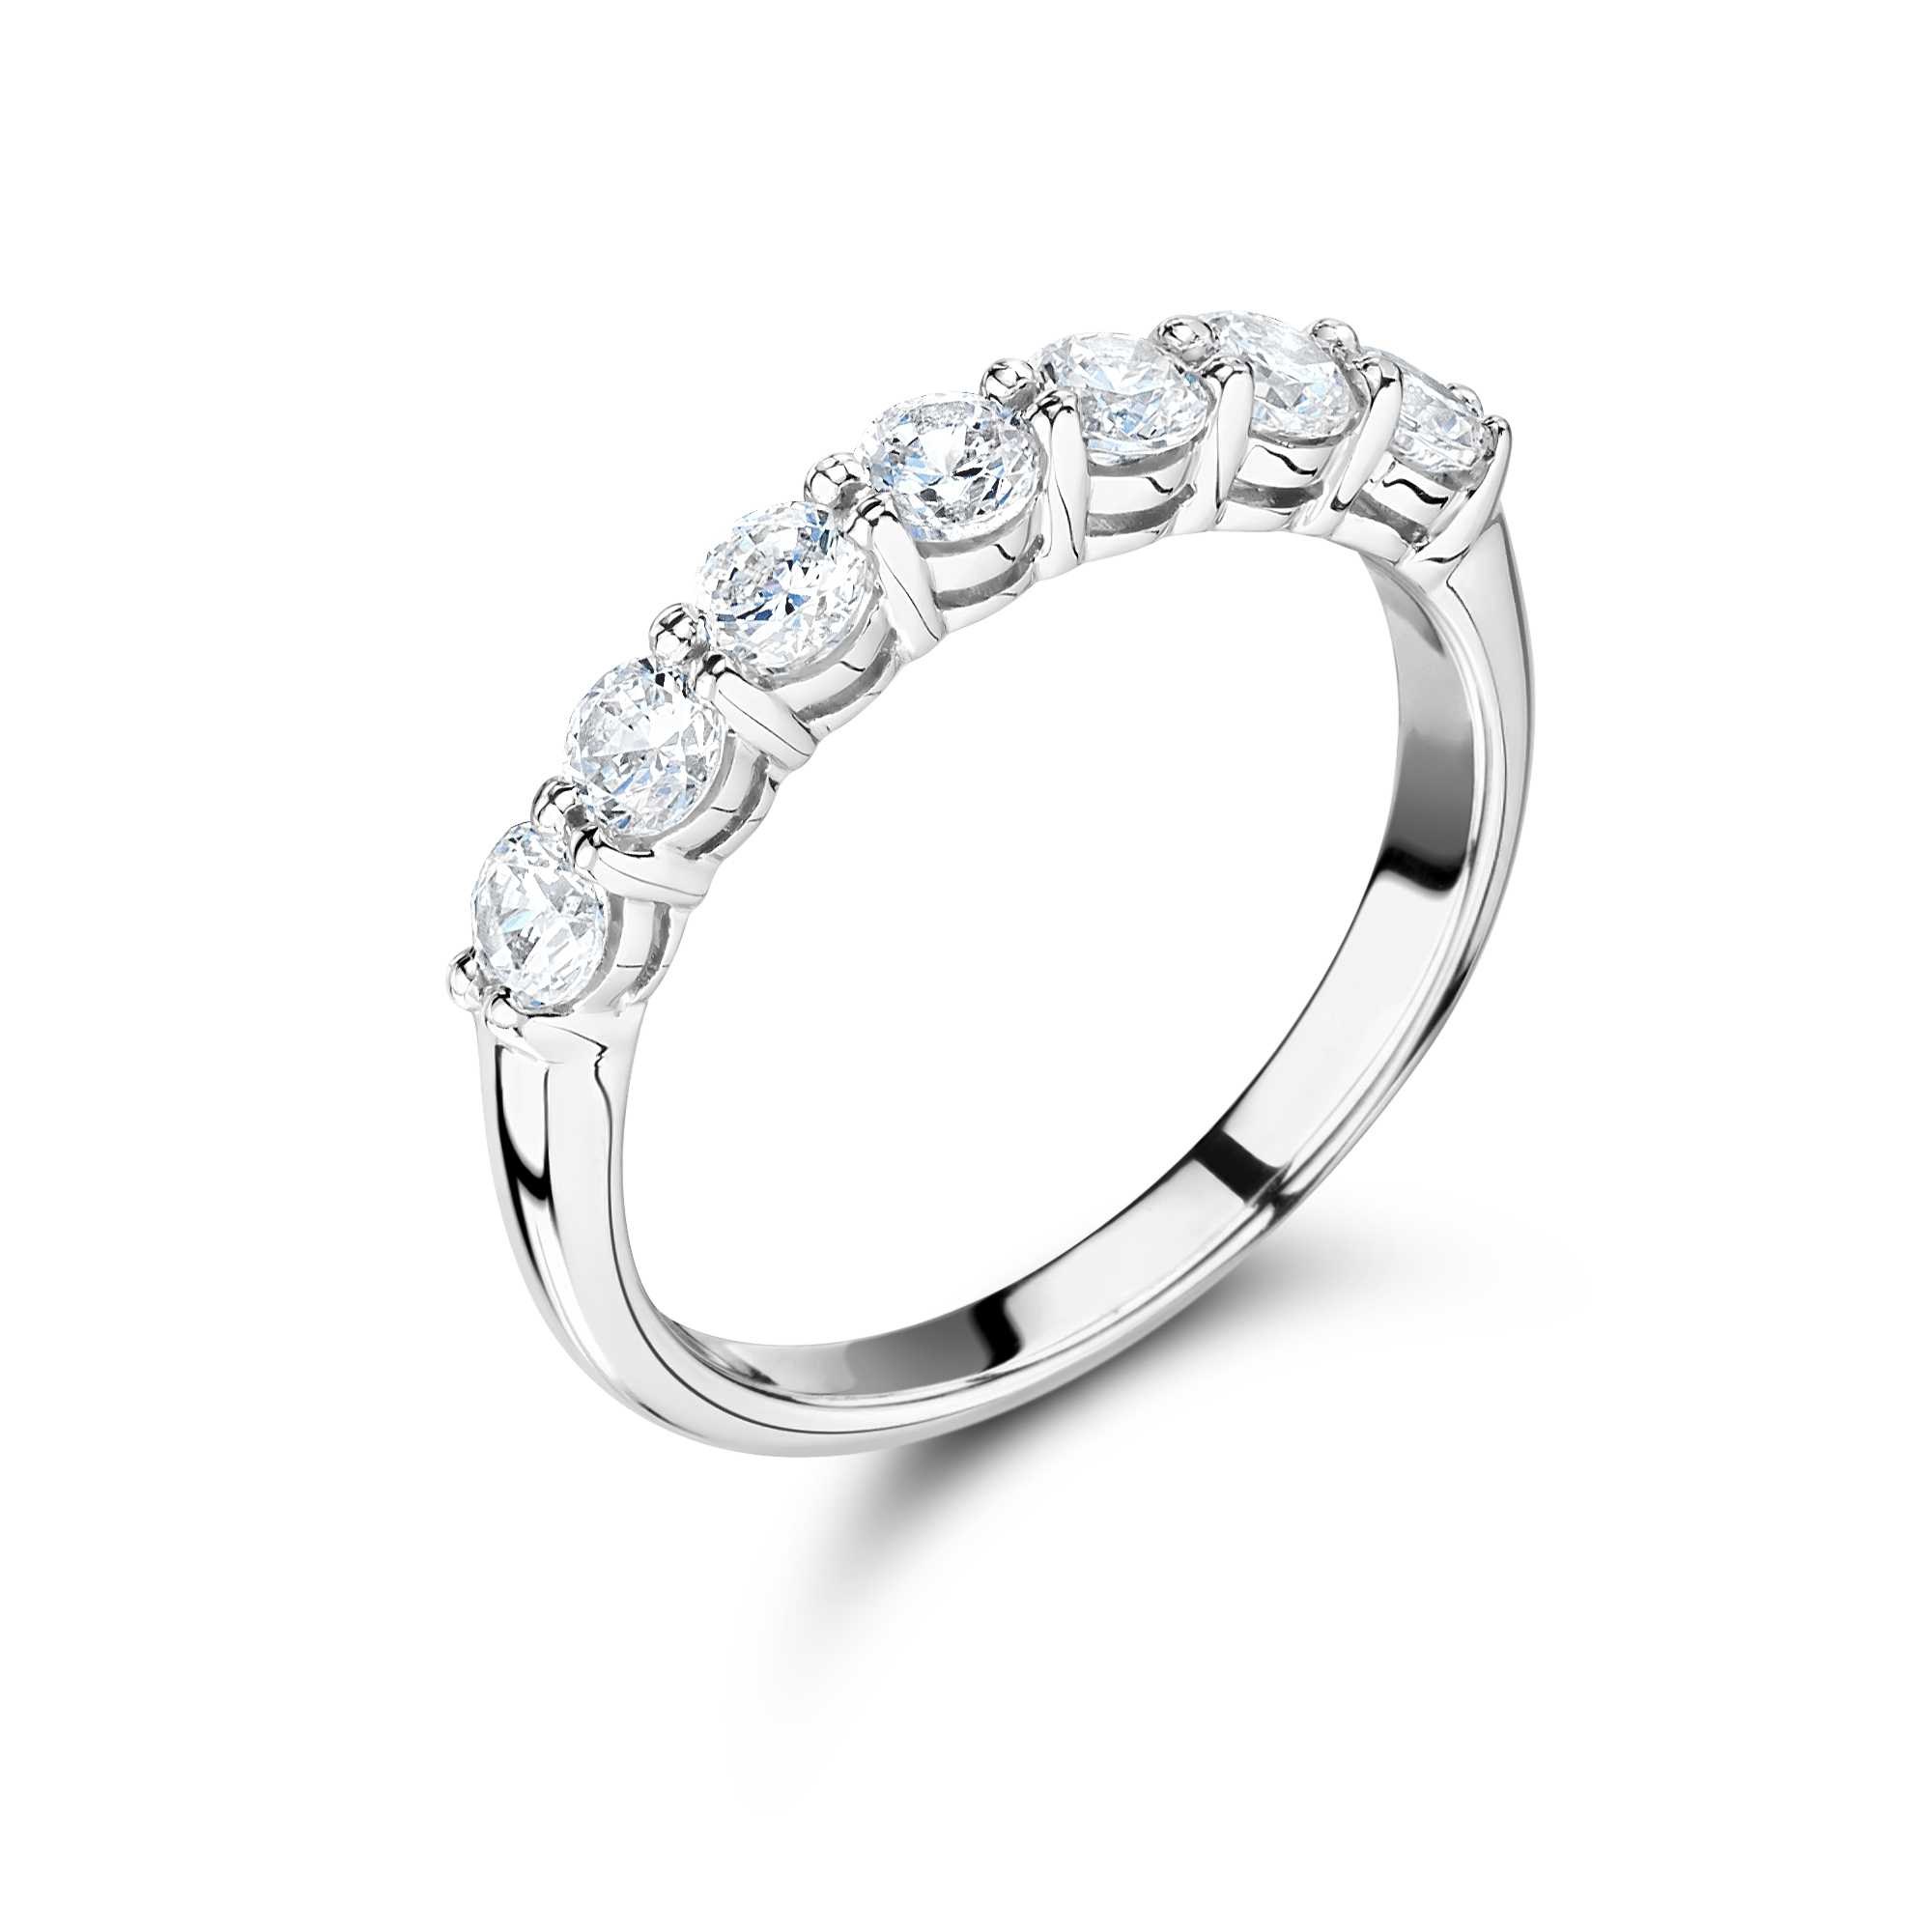 ring diamond engagement shop white rings home giannis online rounded gold ersa crown